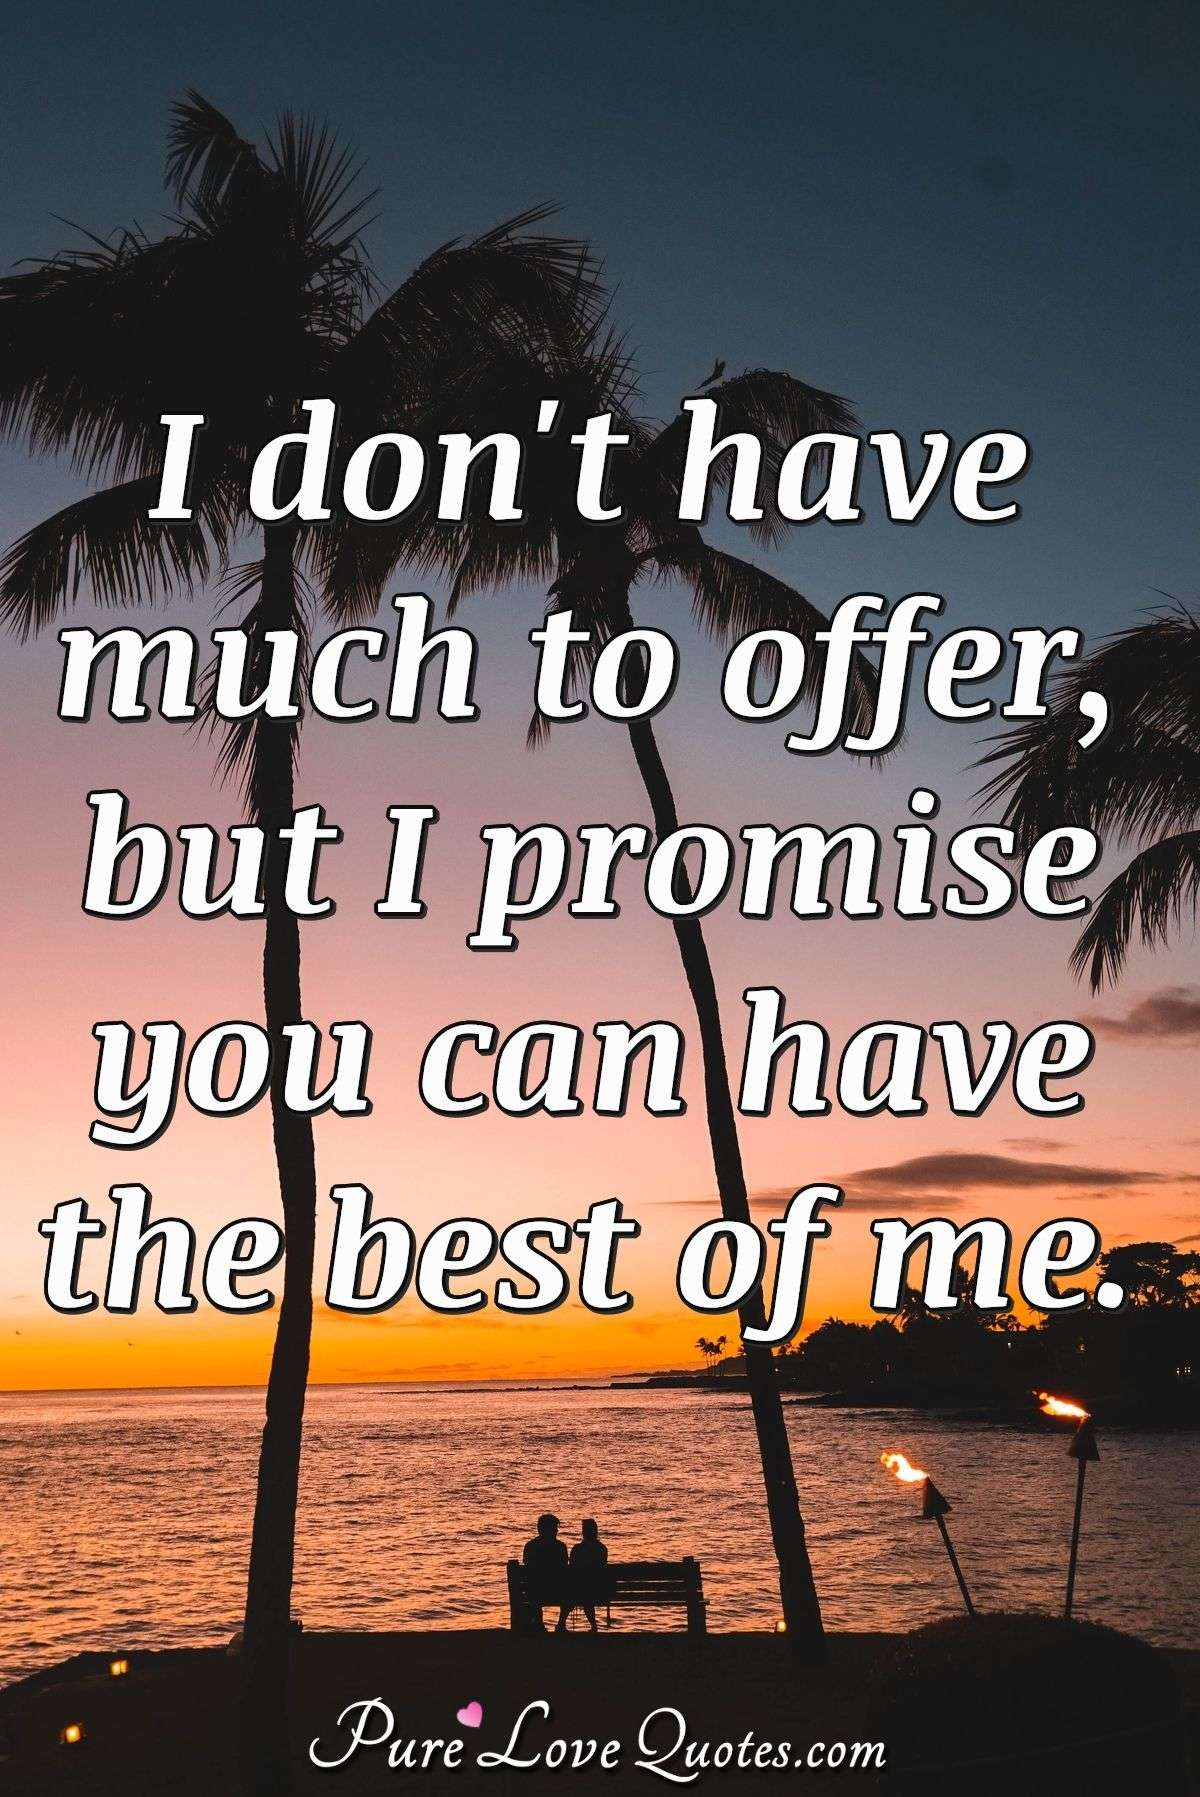 I don't have much to offer, but I promise you can have the best of me. - Anonymous